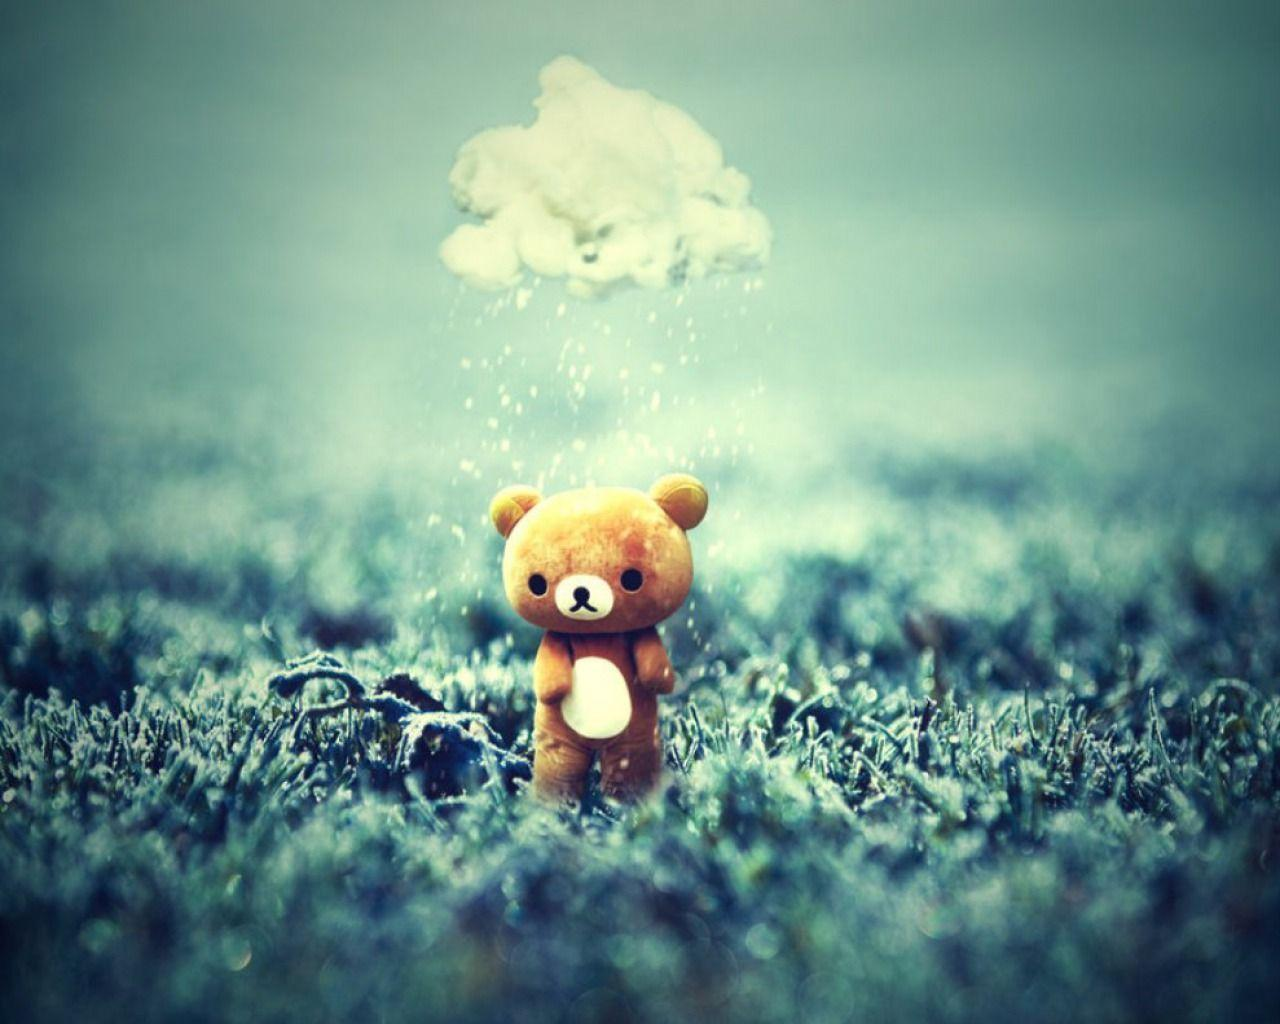 Rain Love Wallpaper Desktop : Teddy Bear Love Wallpapers - Wallpaper cave